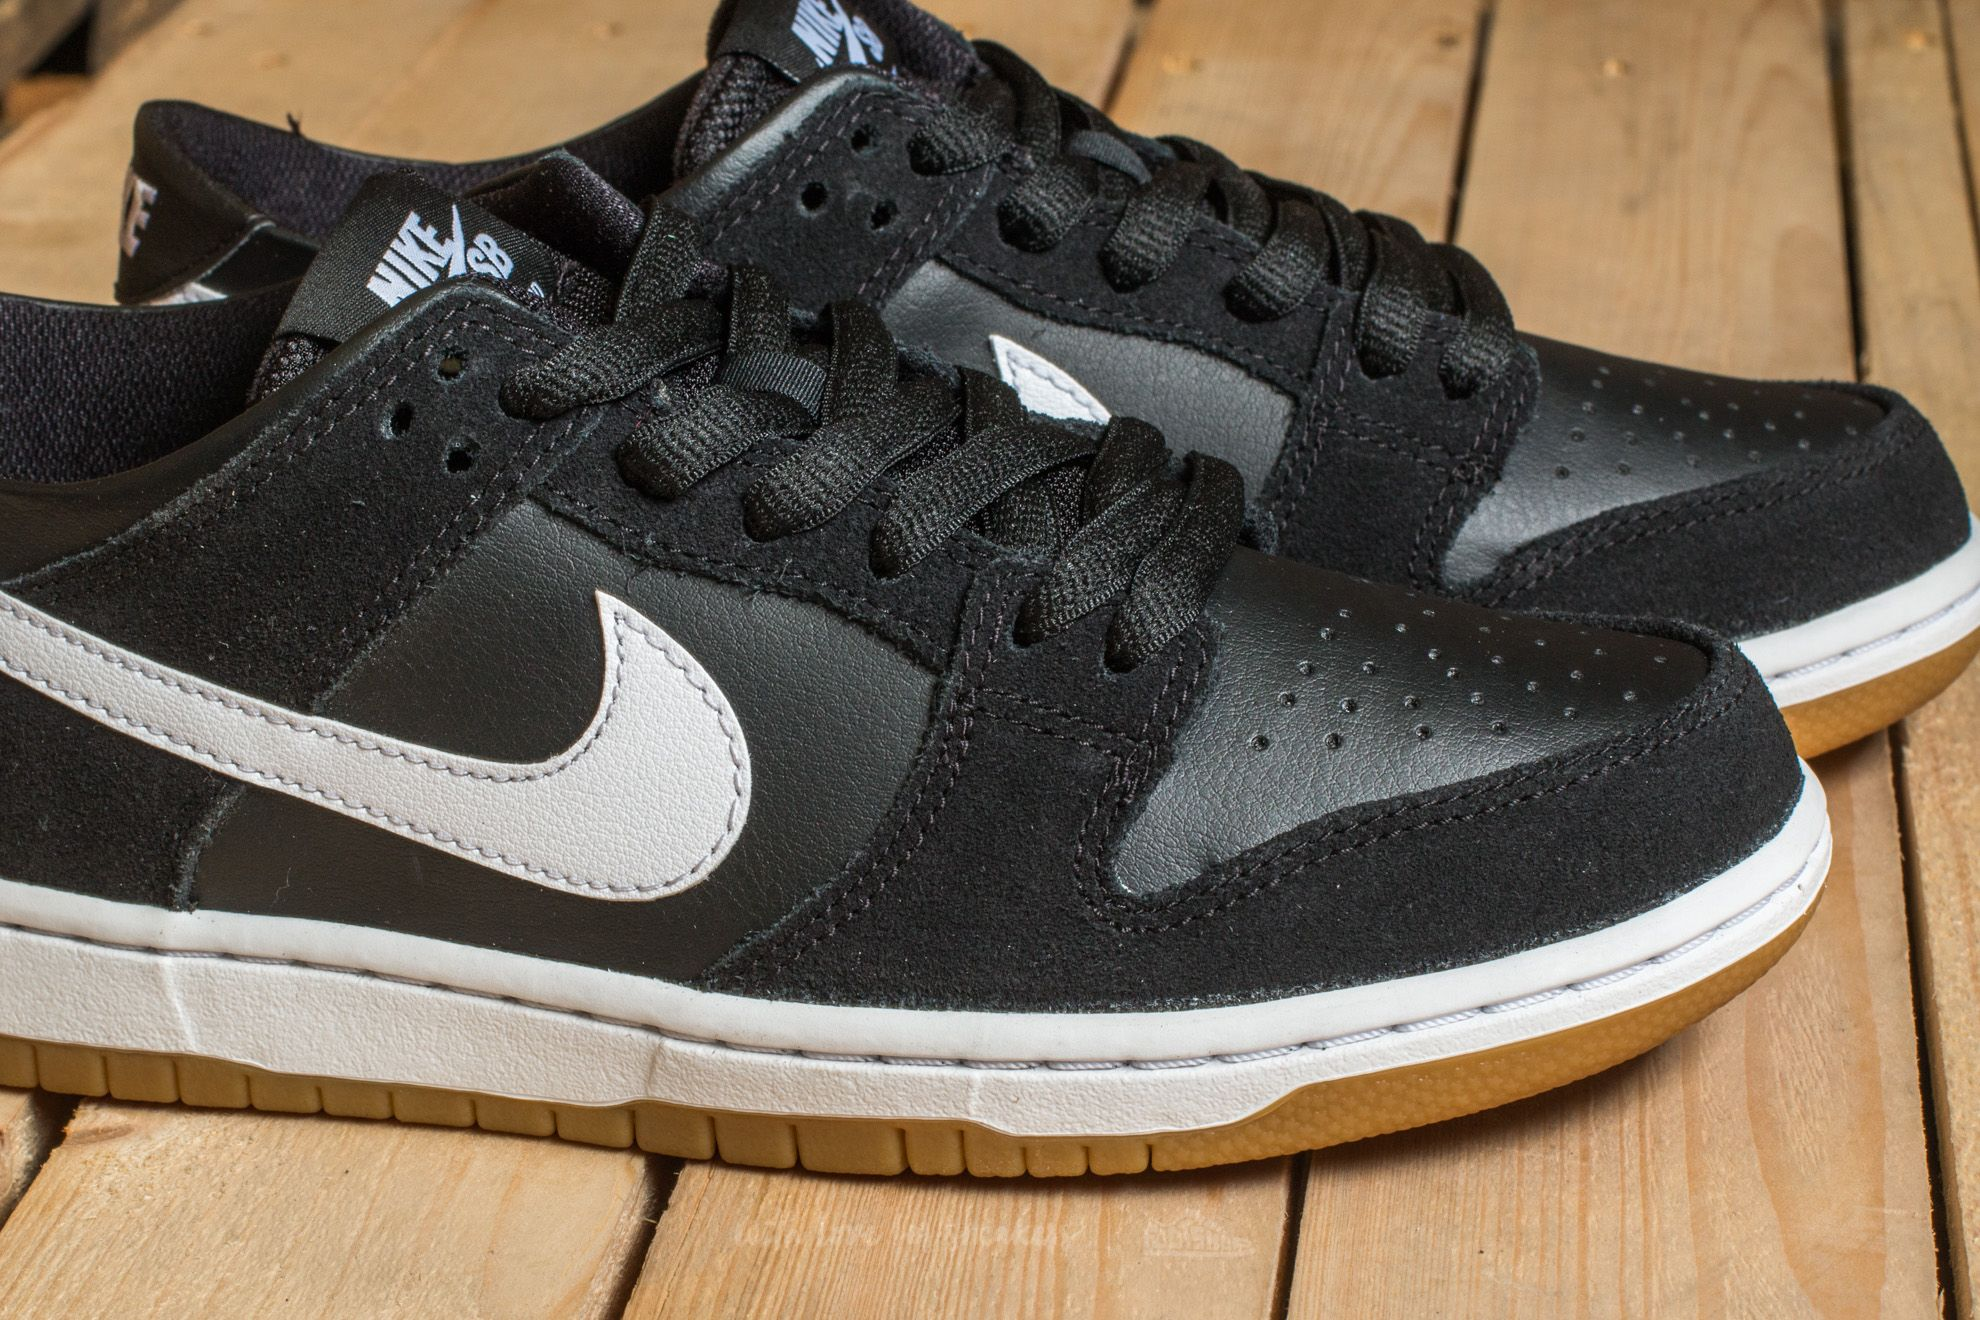 Nike Sb Zoom Dunk Low Pro Black White Gum Light Brown | Footshop